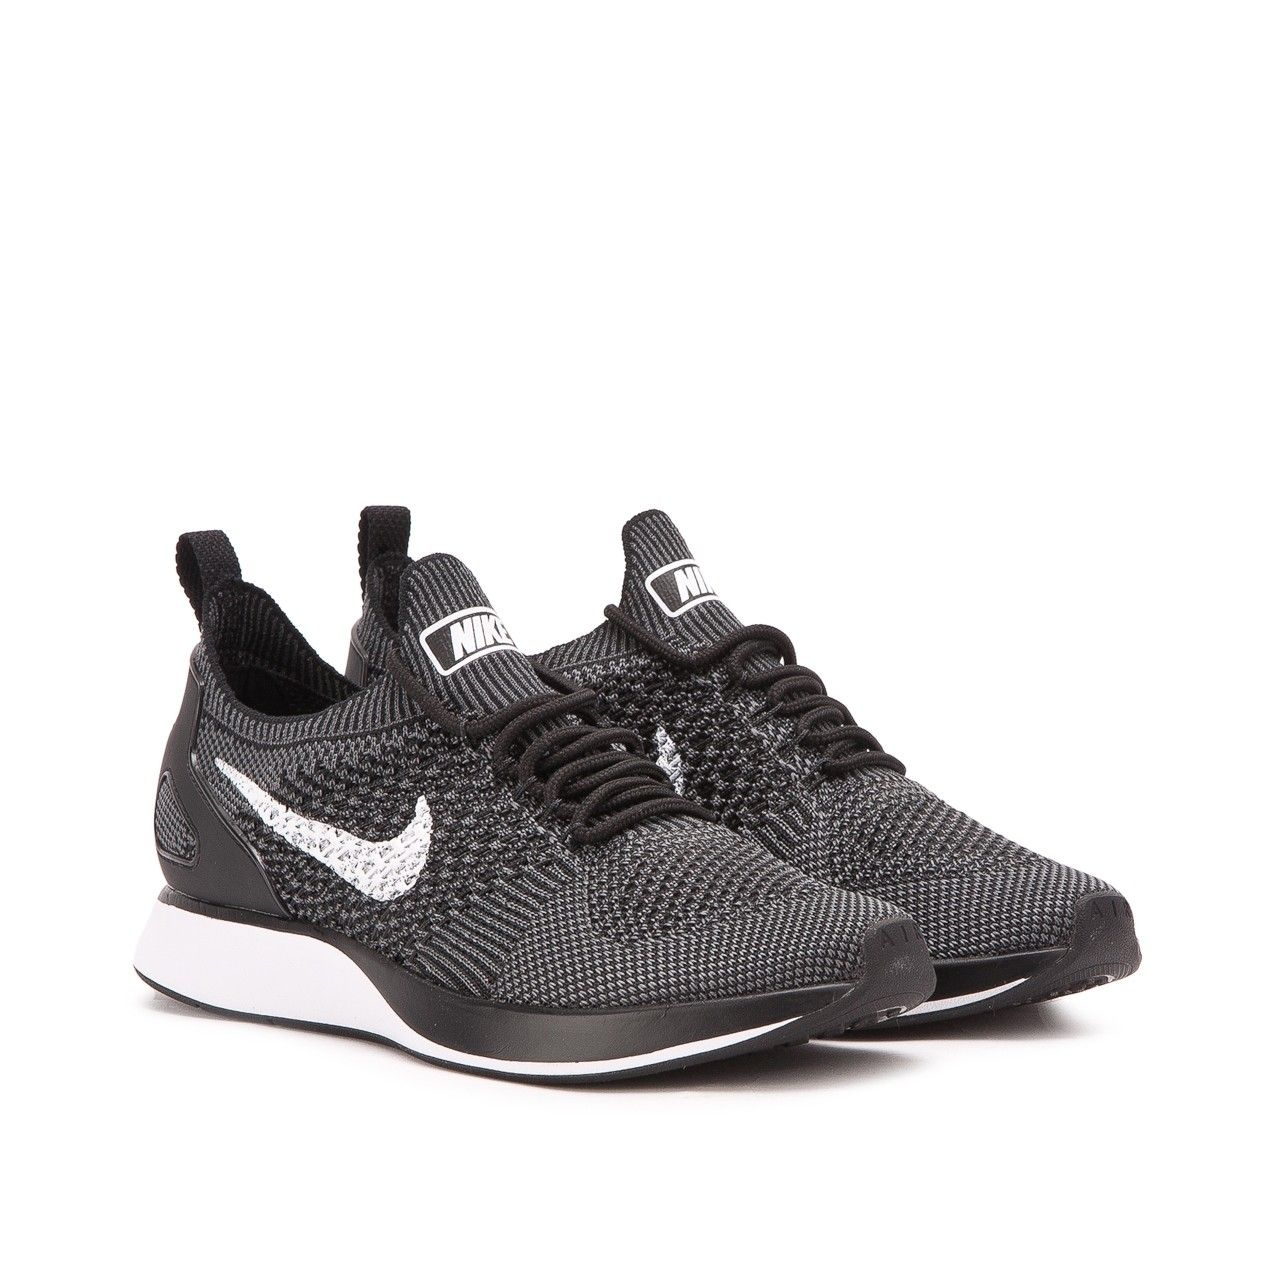 Nike WMNS Air Zoom Mariah Flyknit Racer (Black / White)